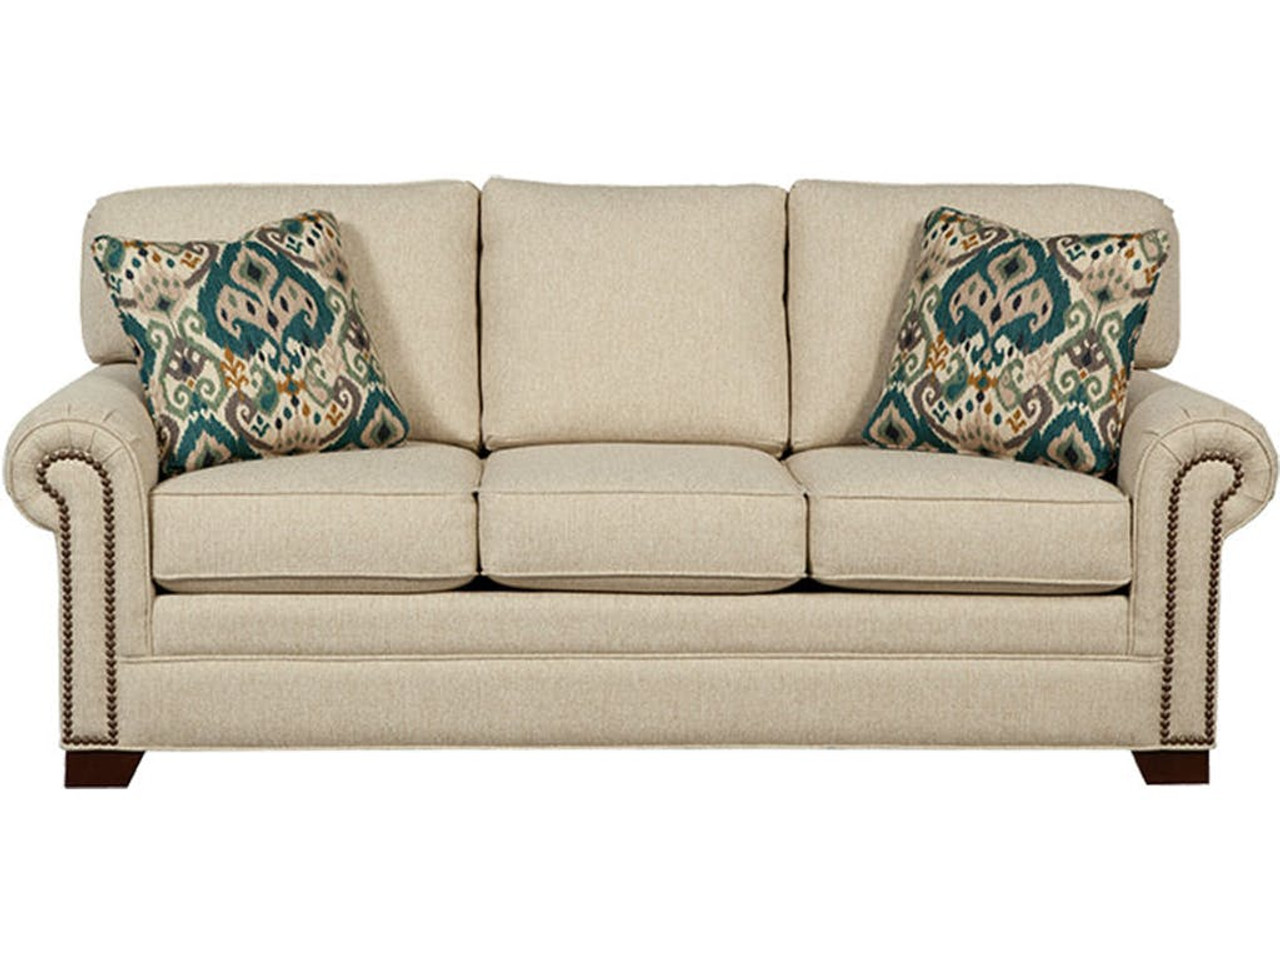 The Craftmaster Model 756550-68 Sleeper Sofa/Couch